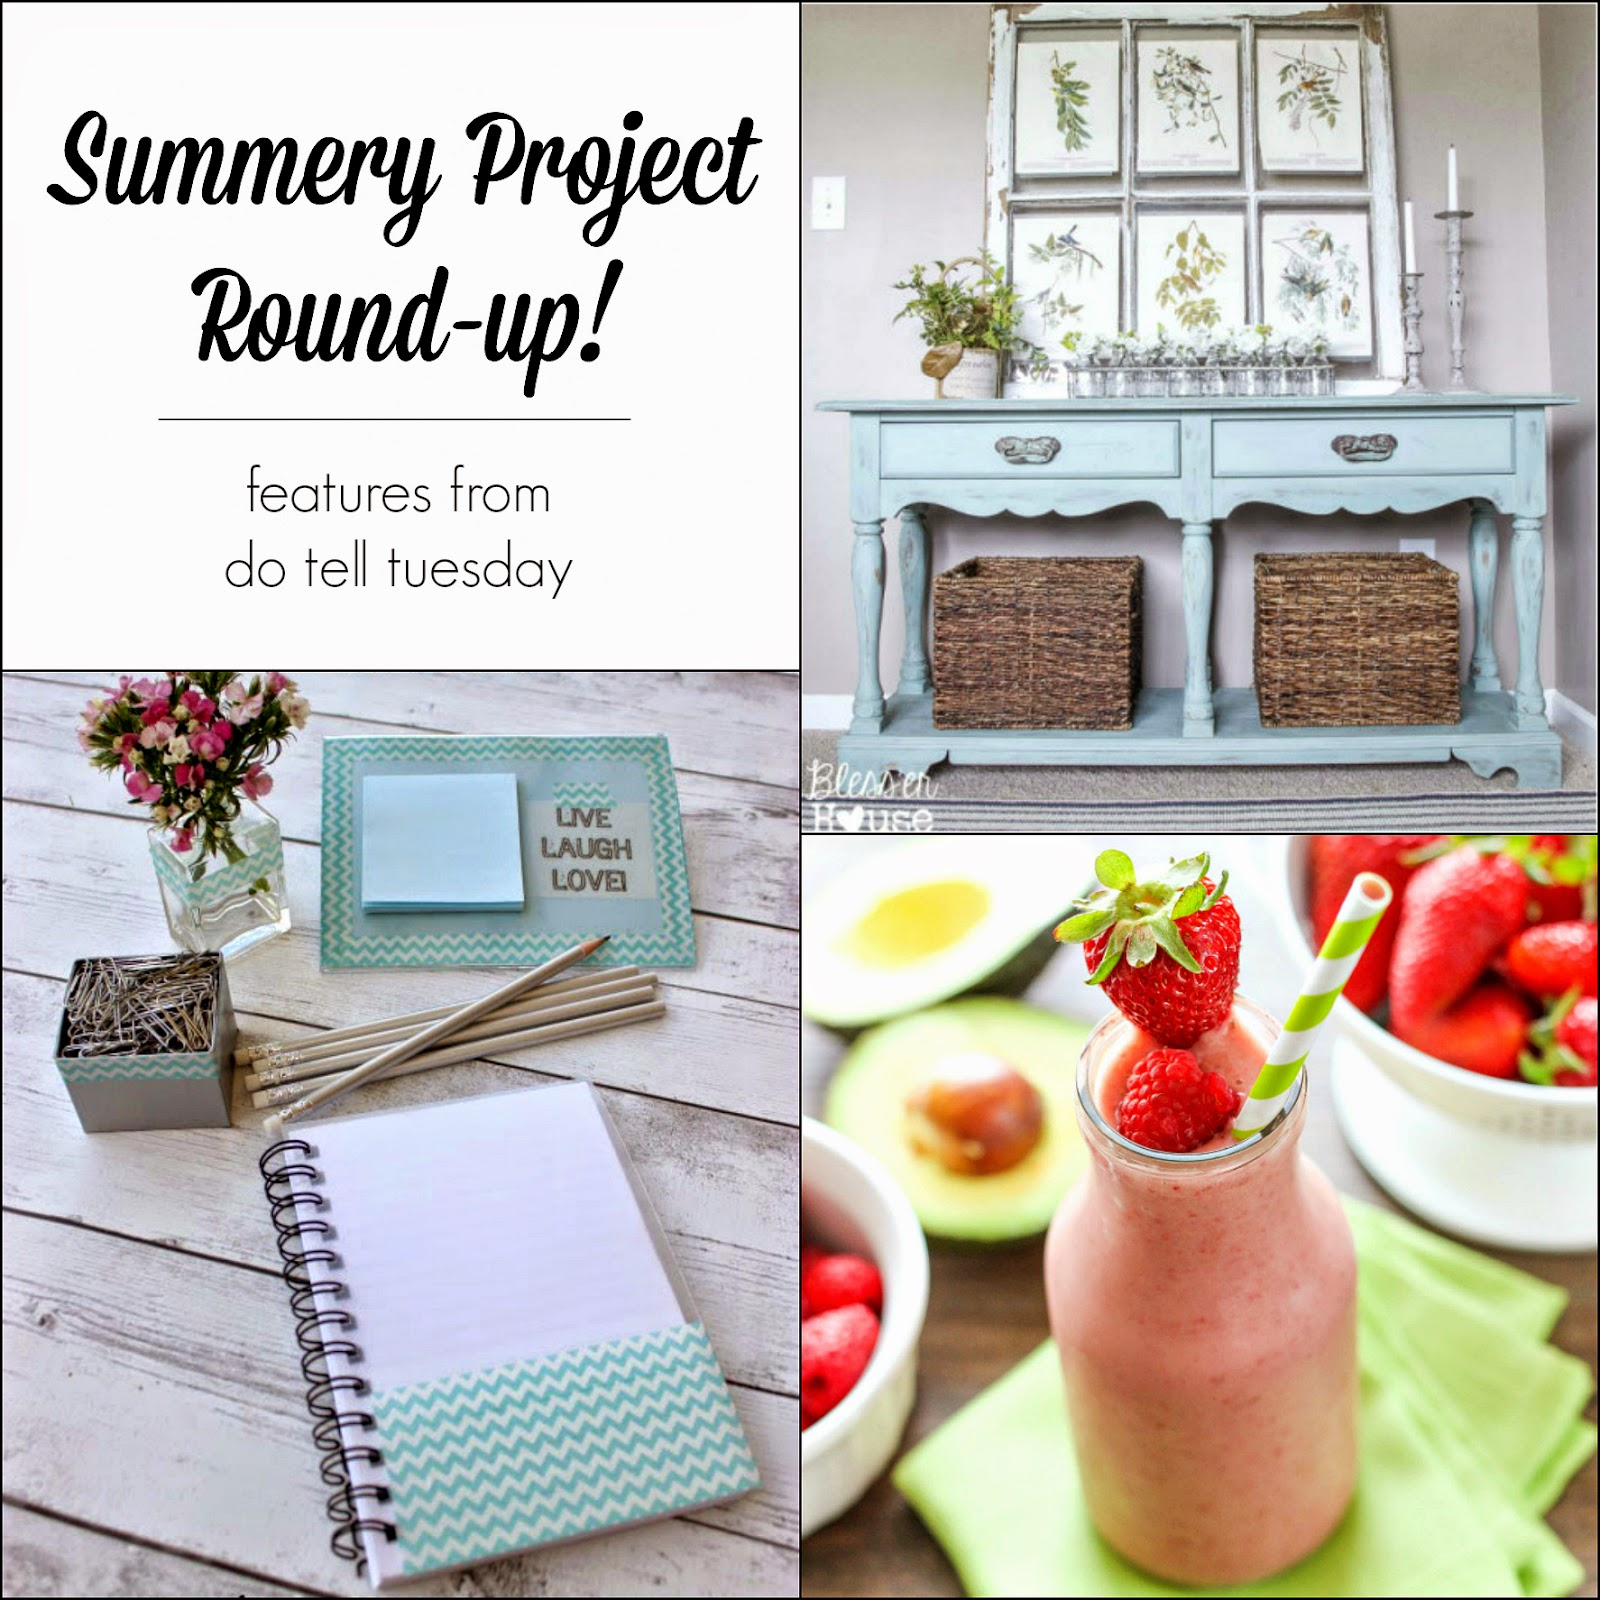 Summery Project Round-Up on Diane's Vintage Zest!